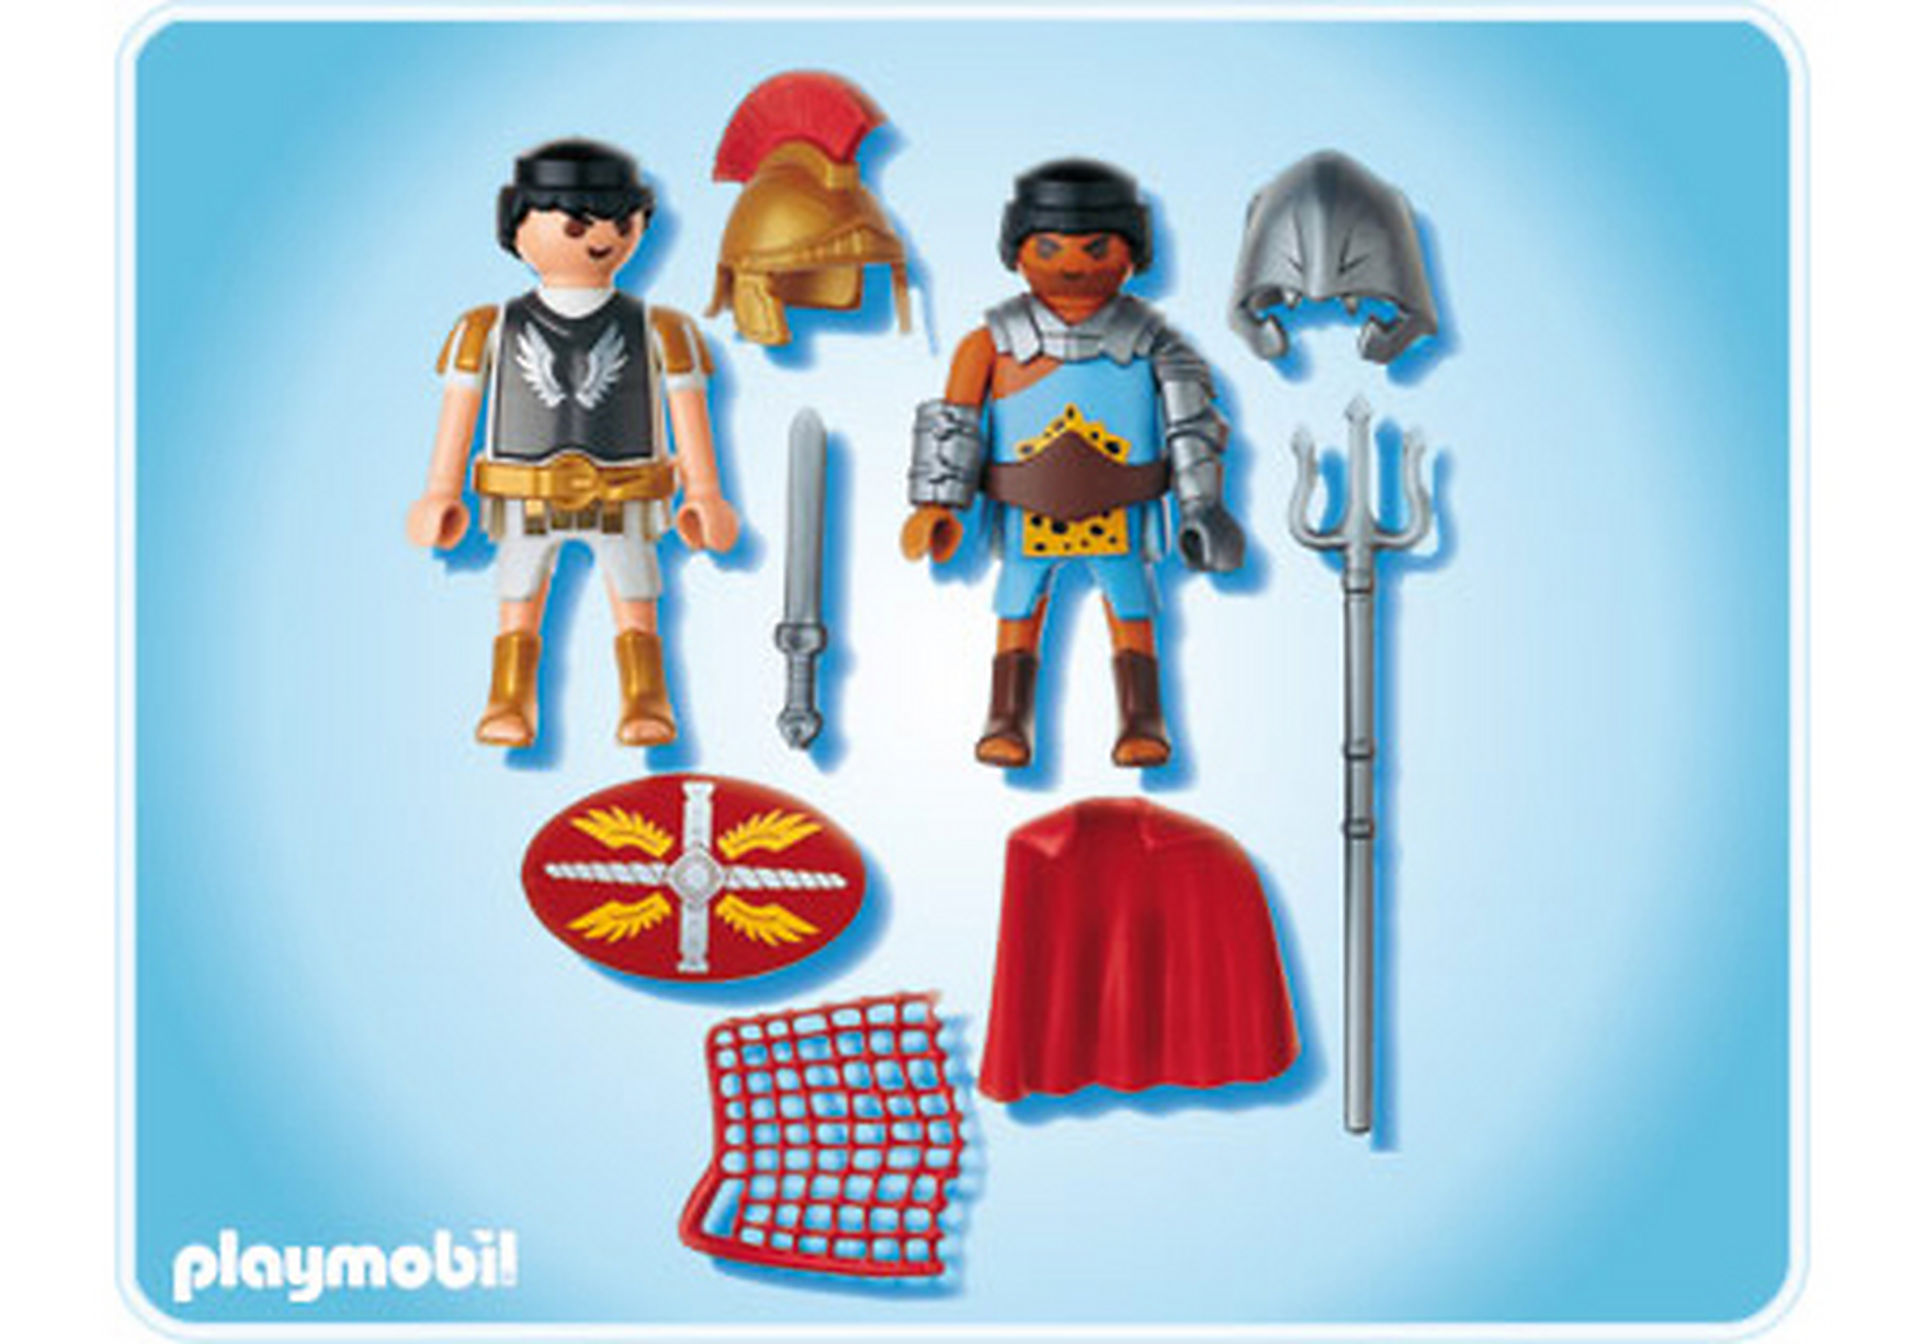 5817-A PLAYMOBIL Duo Tribun et gladiateur zoom image2